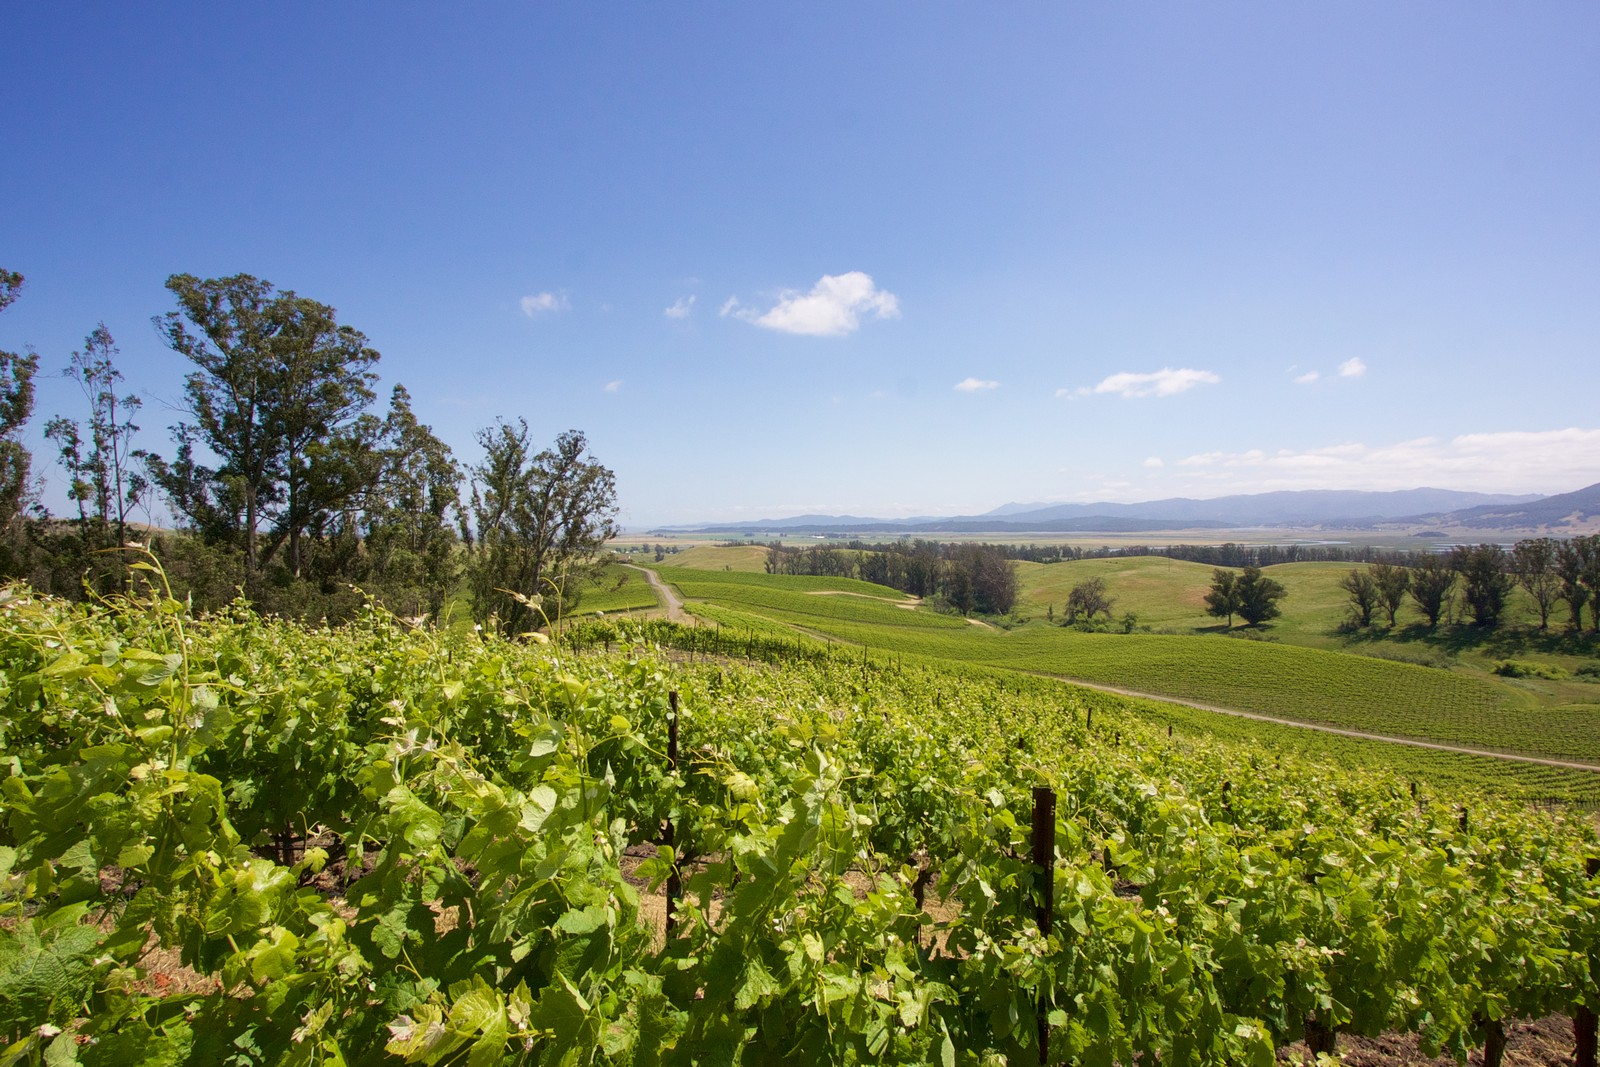 Land for Sale at Parliament Hills Vineyard 6509 Lakeville Hwy Petaluma, California, 94954 United States